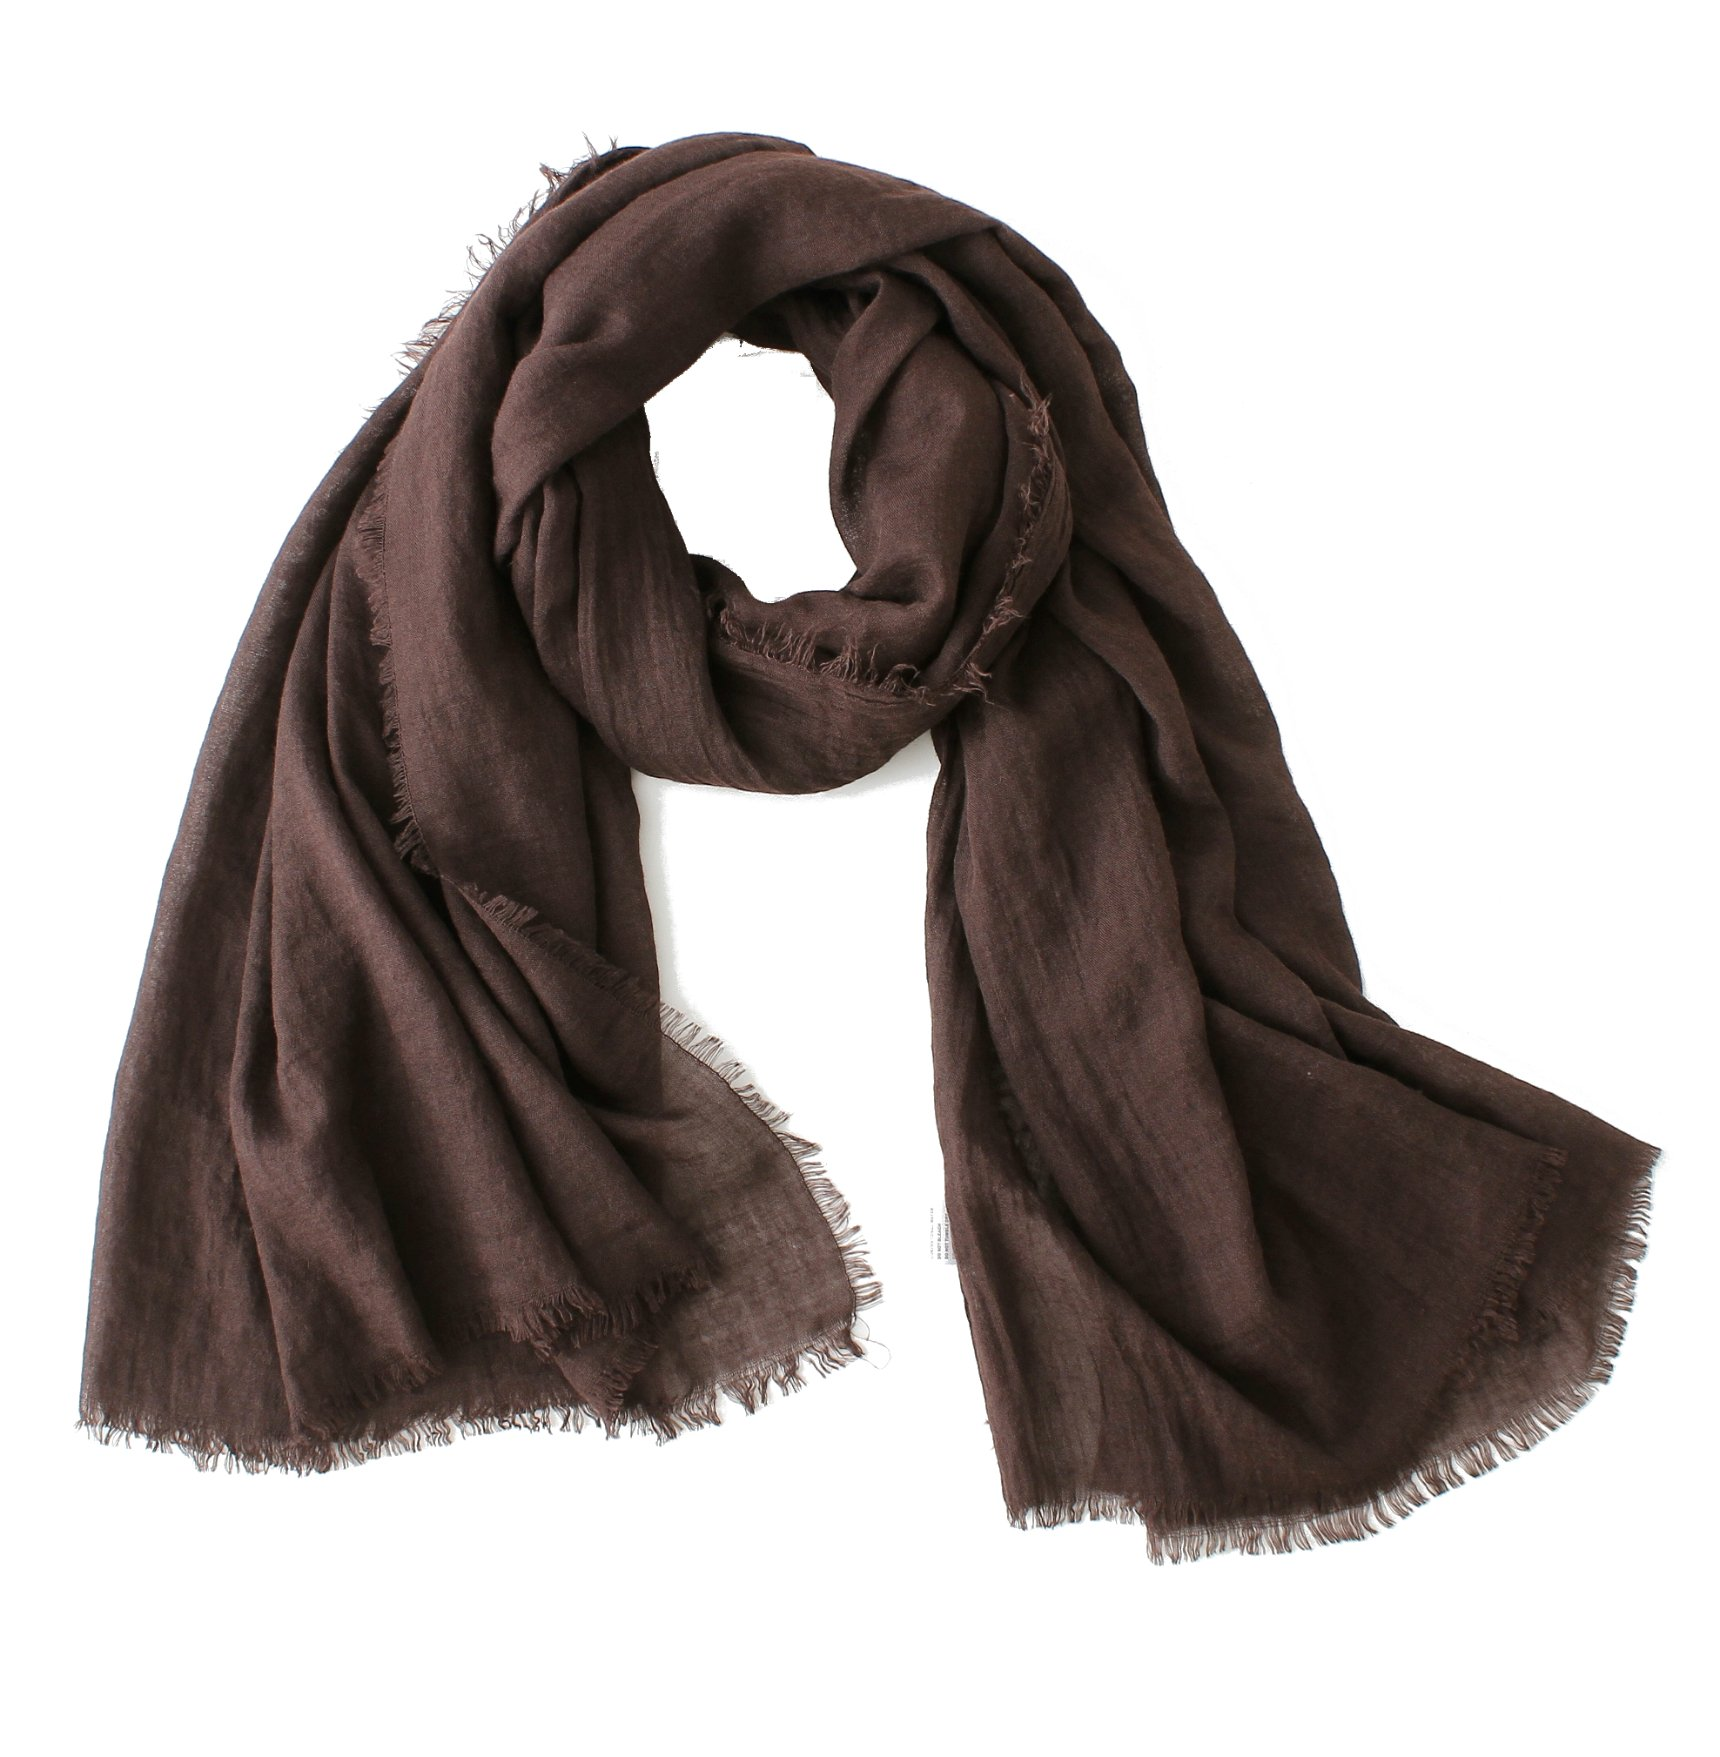 Cotton Scarf Shawl Wrap Soft Lightweight Scarves And Wraps For Men And Women. (Coffee)